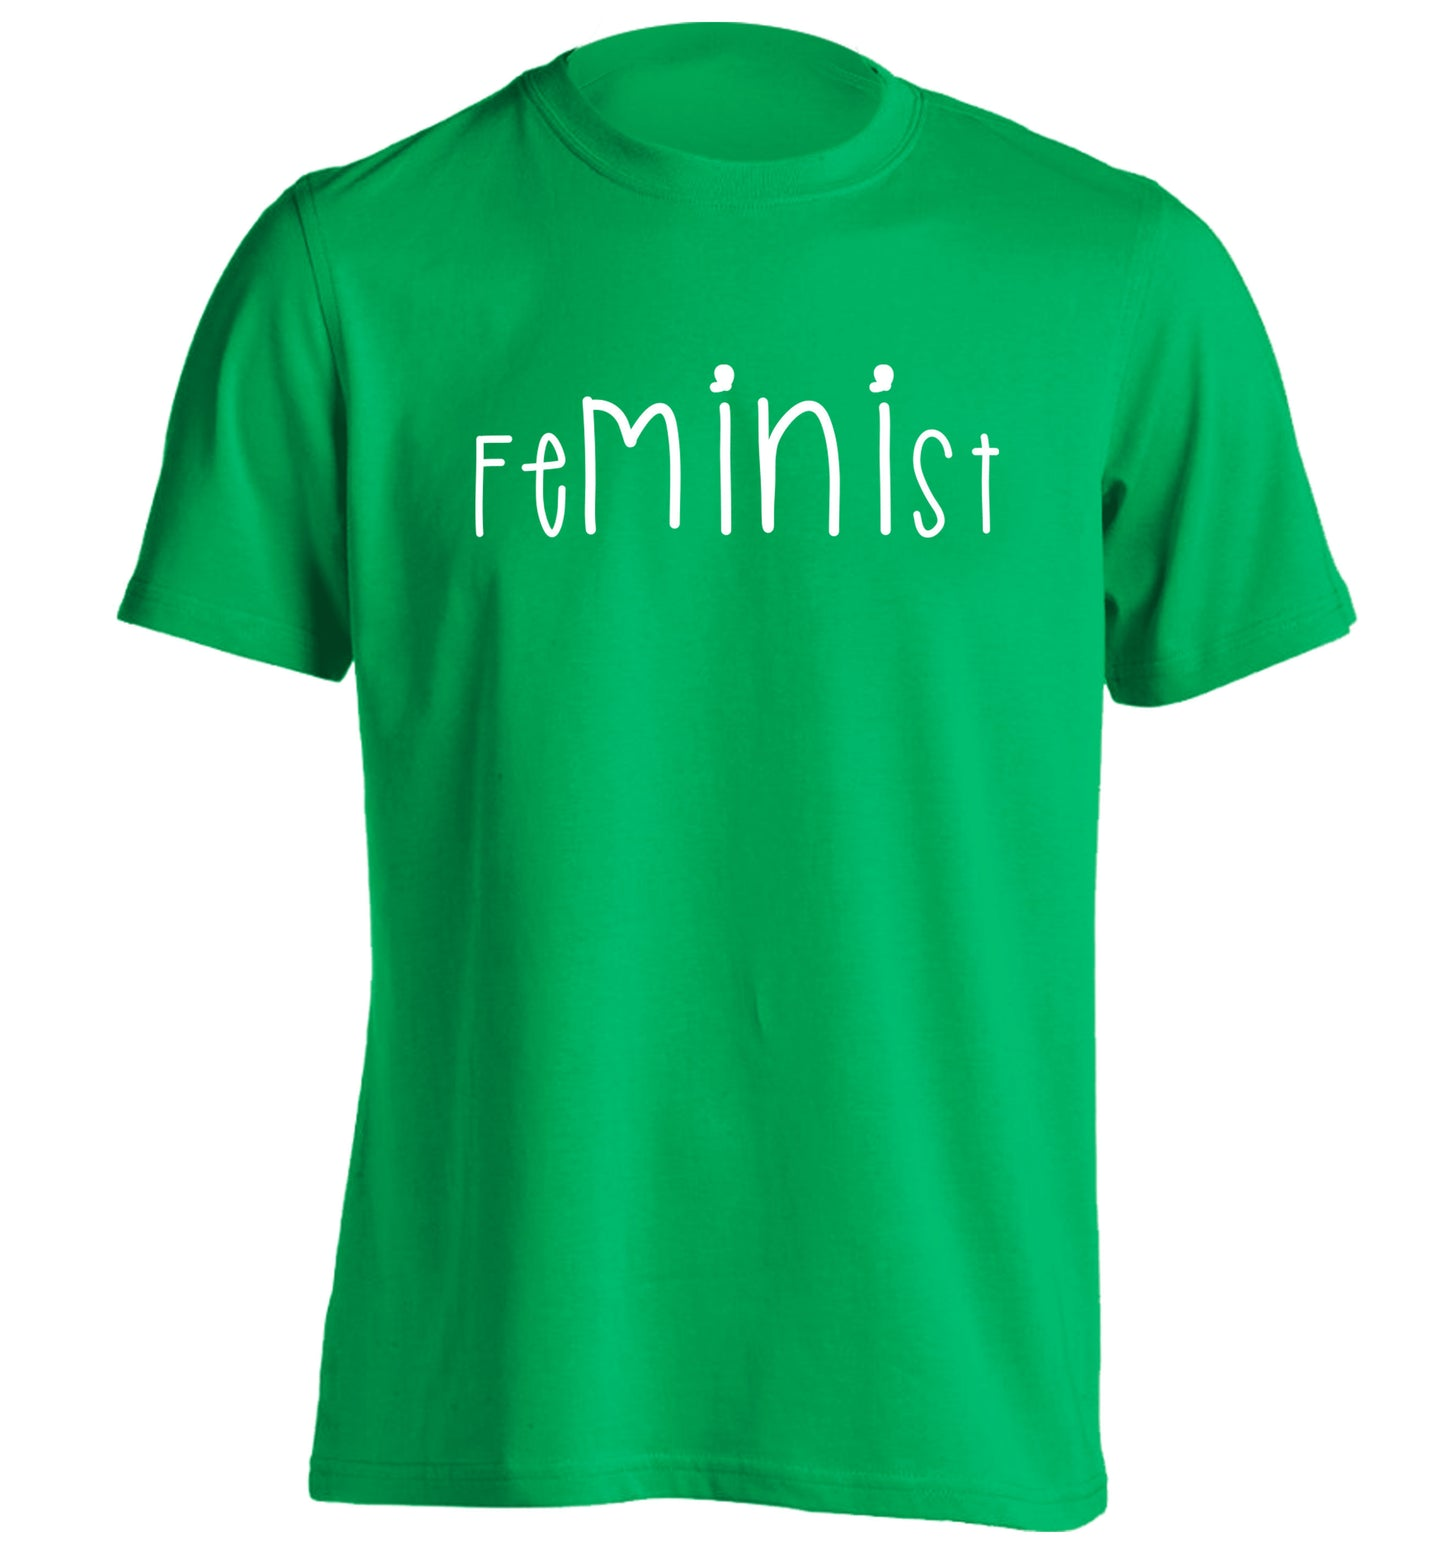 FeMINIst adults unisex green Tshirt 2XL